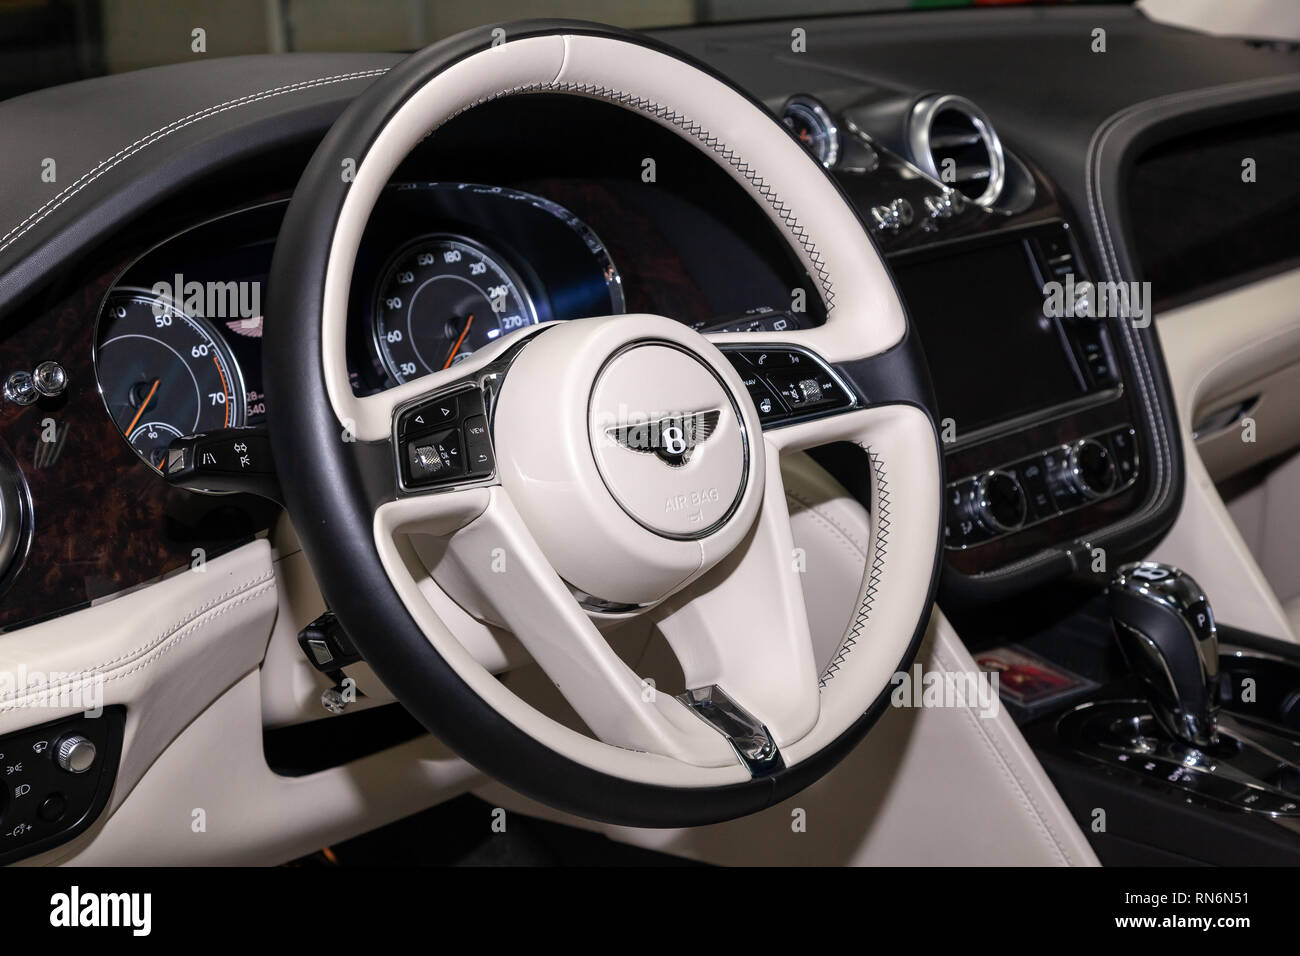 Novosibirsk Russia 08 01 18 Interior View With Steering Wheel Of Luxury Very Expensive New Black Bentley Bentayga Car Stands In The Washing Box Wa Stock Photo Alamy